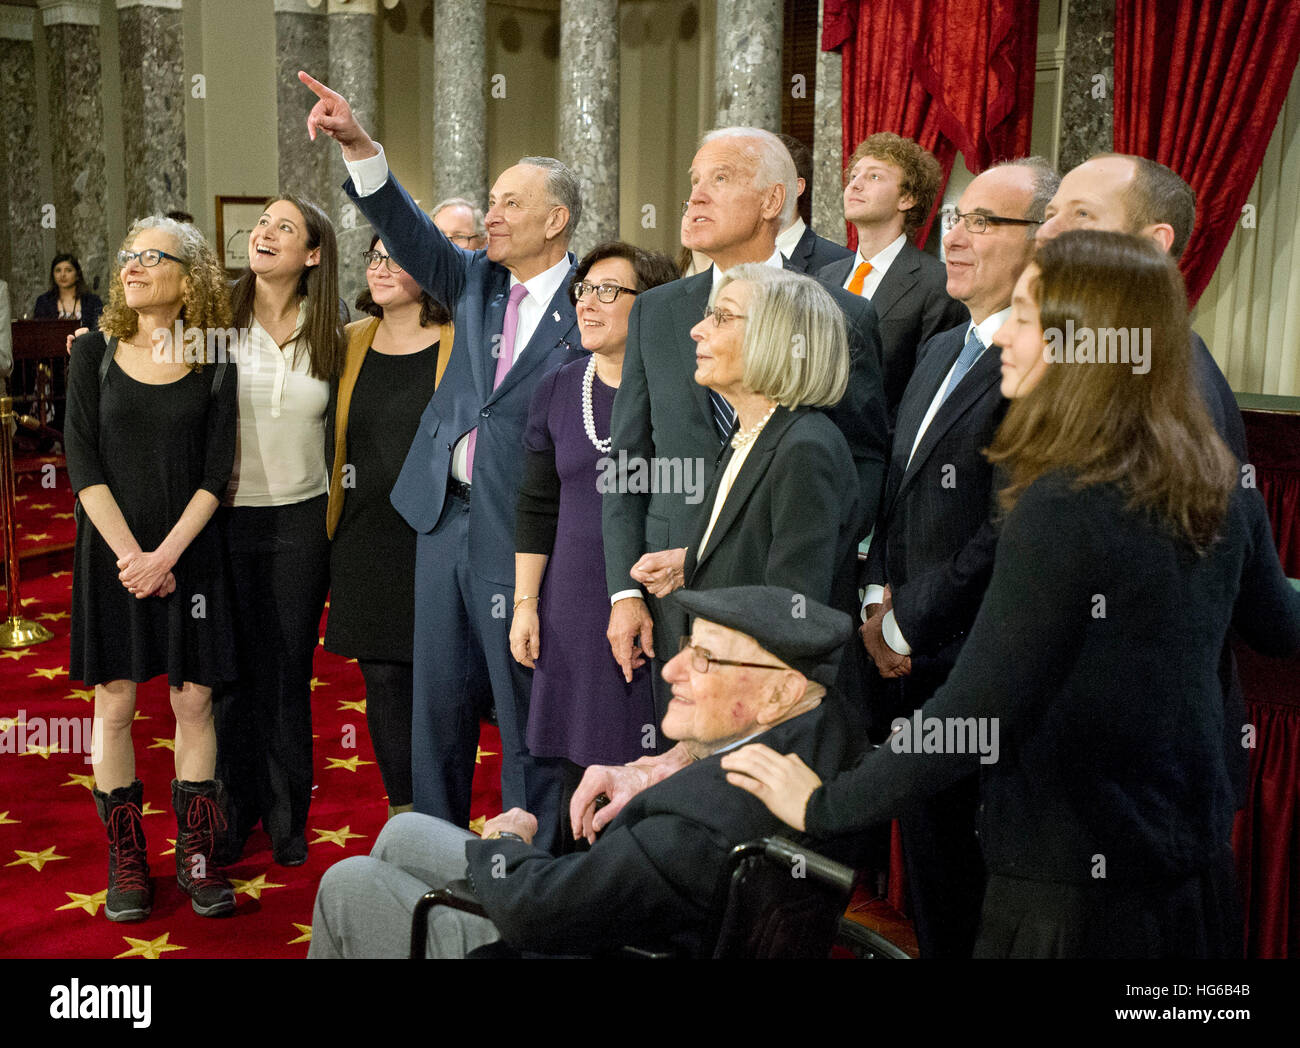 Weinshall High Resolution Stock Photography And Images Alamy Just like schumer, weinshall is also jewish. https www alamy com stock photo united states senator chuck schumer democrat of new york points to 130447531 html